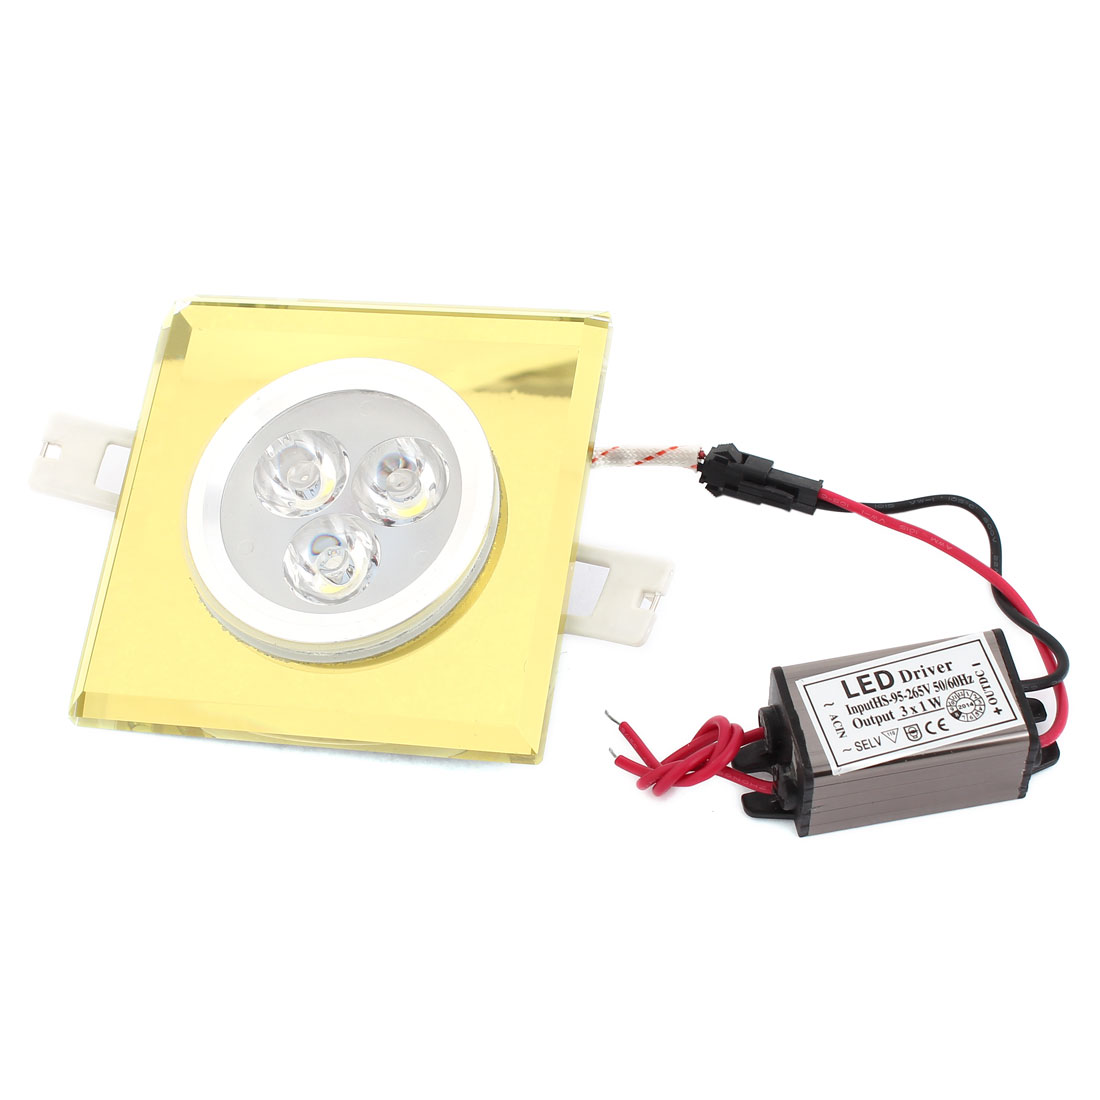 White 3W 3 LED Faux Crystal Ceiling Downlight Recessed Lamp Spot Light AC95-265V